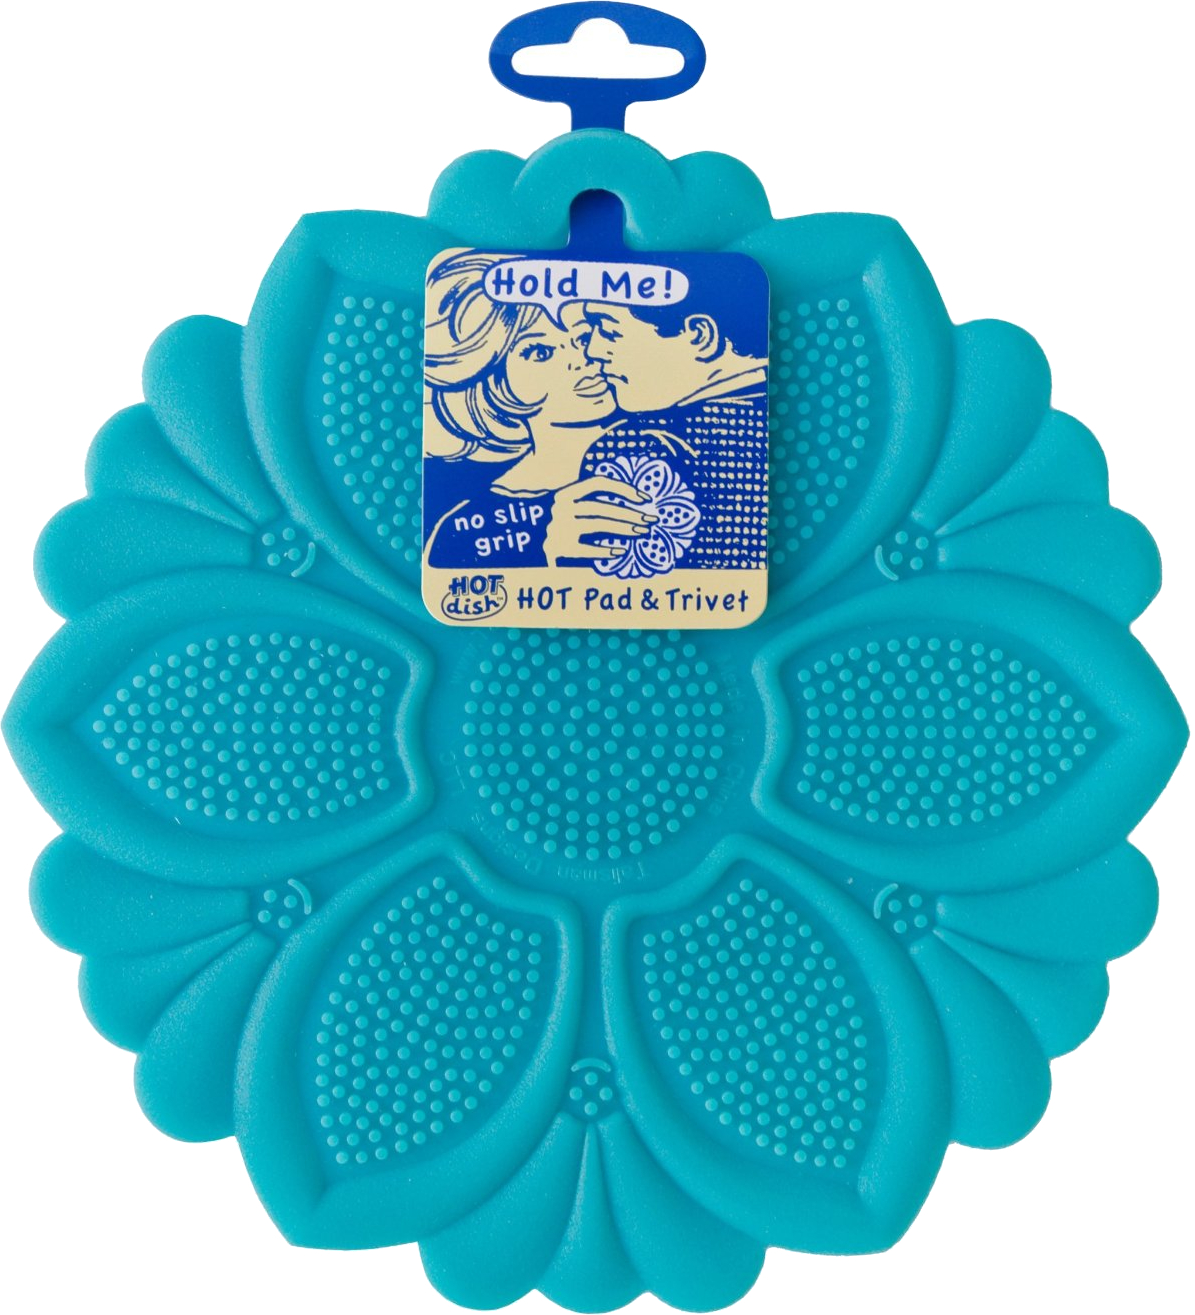 Talisman Designs Blue Silicone No-Slip Grip Hot Pad and Trivet